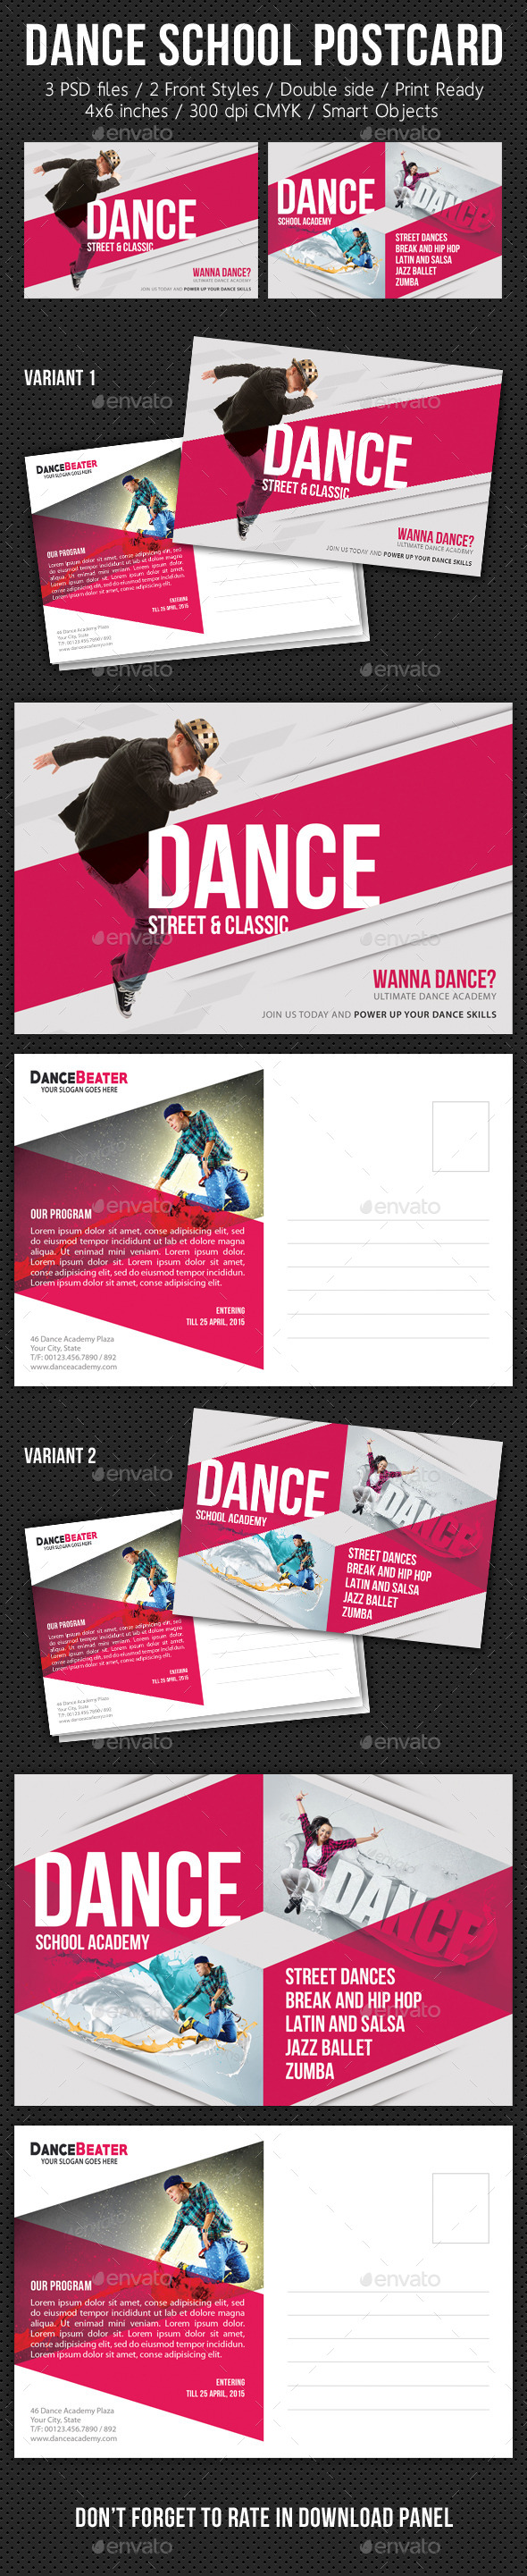 Multiuse Street Dance Postcard V01 - Cards & Invites Print Templates